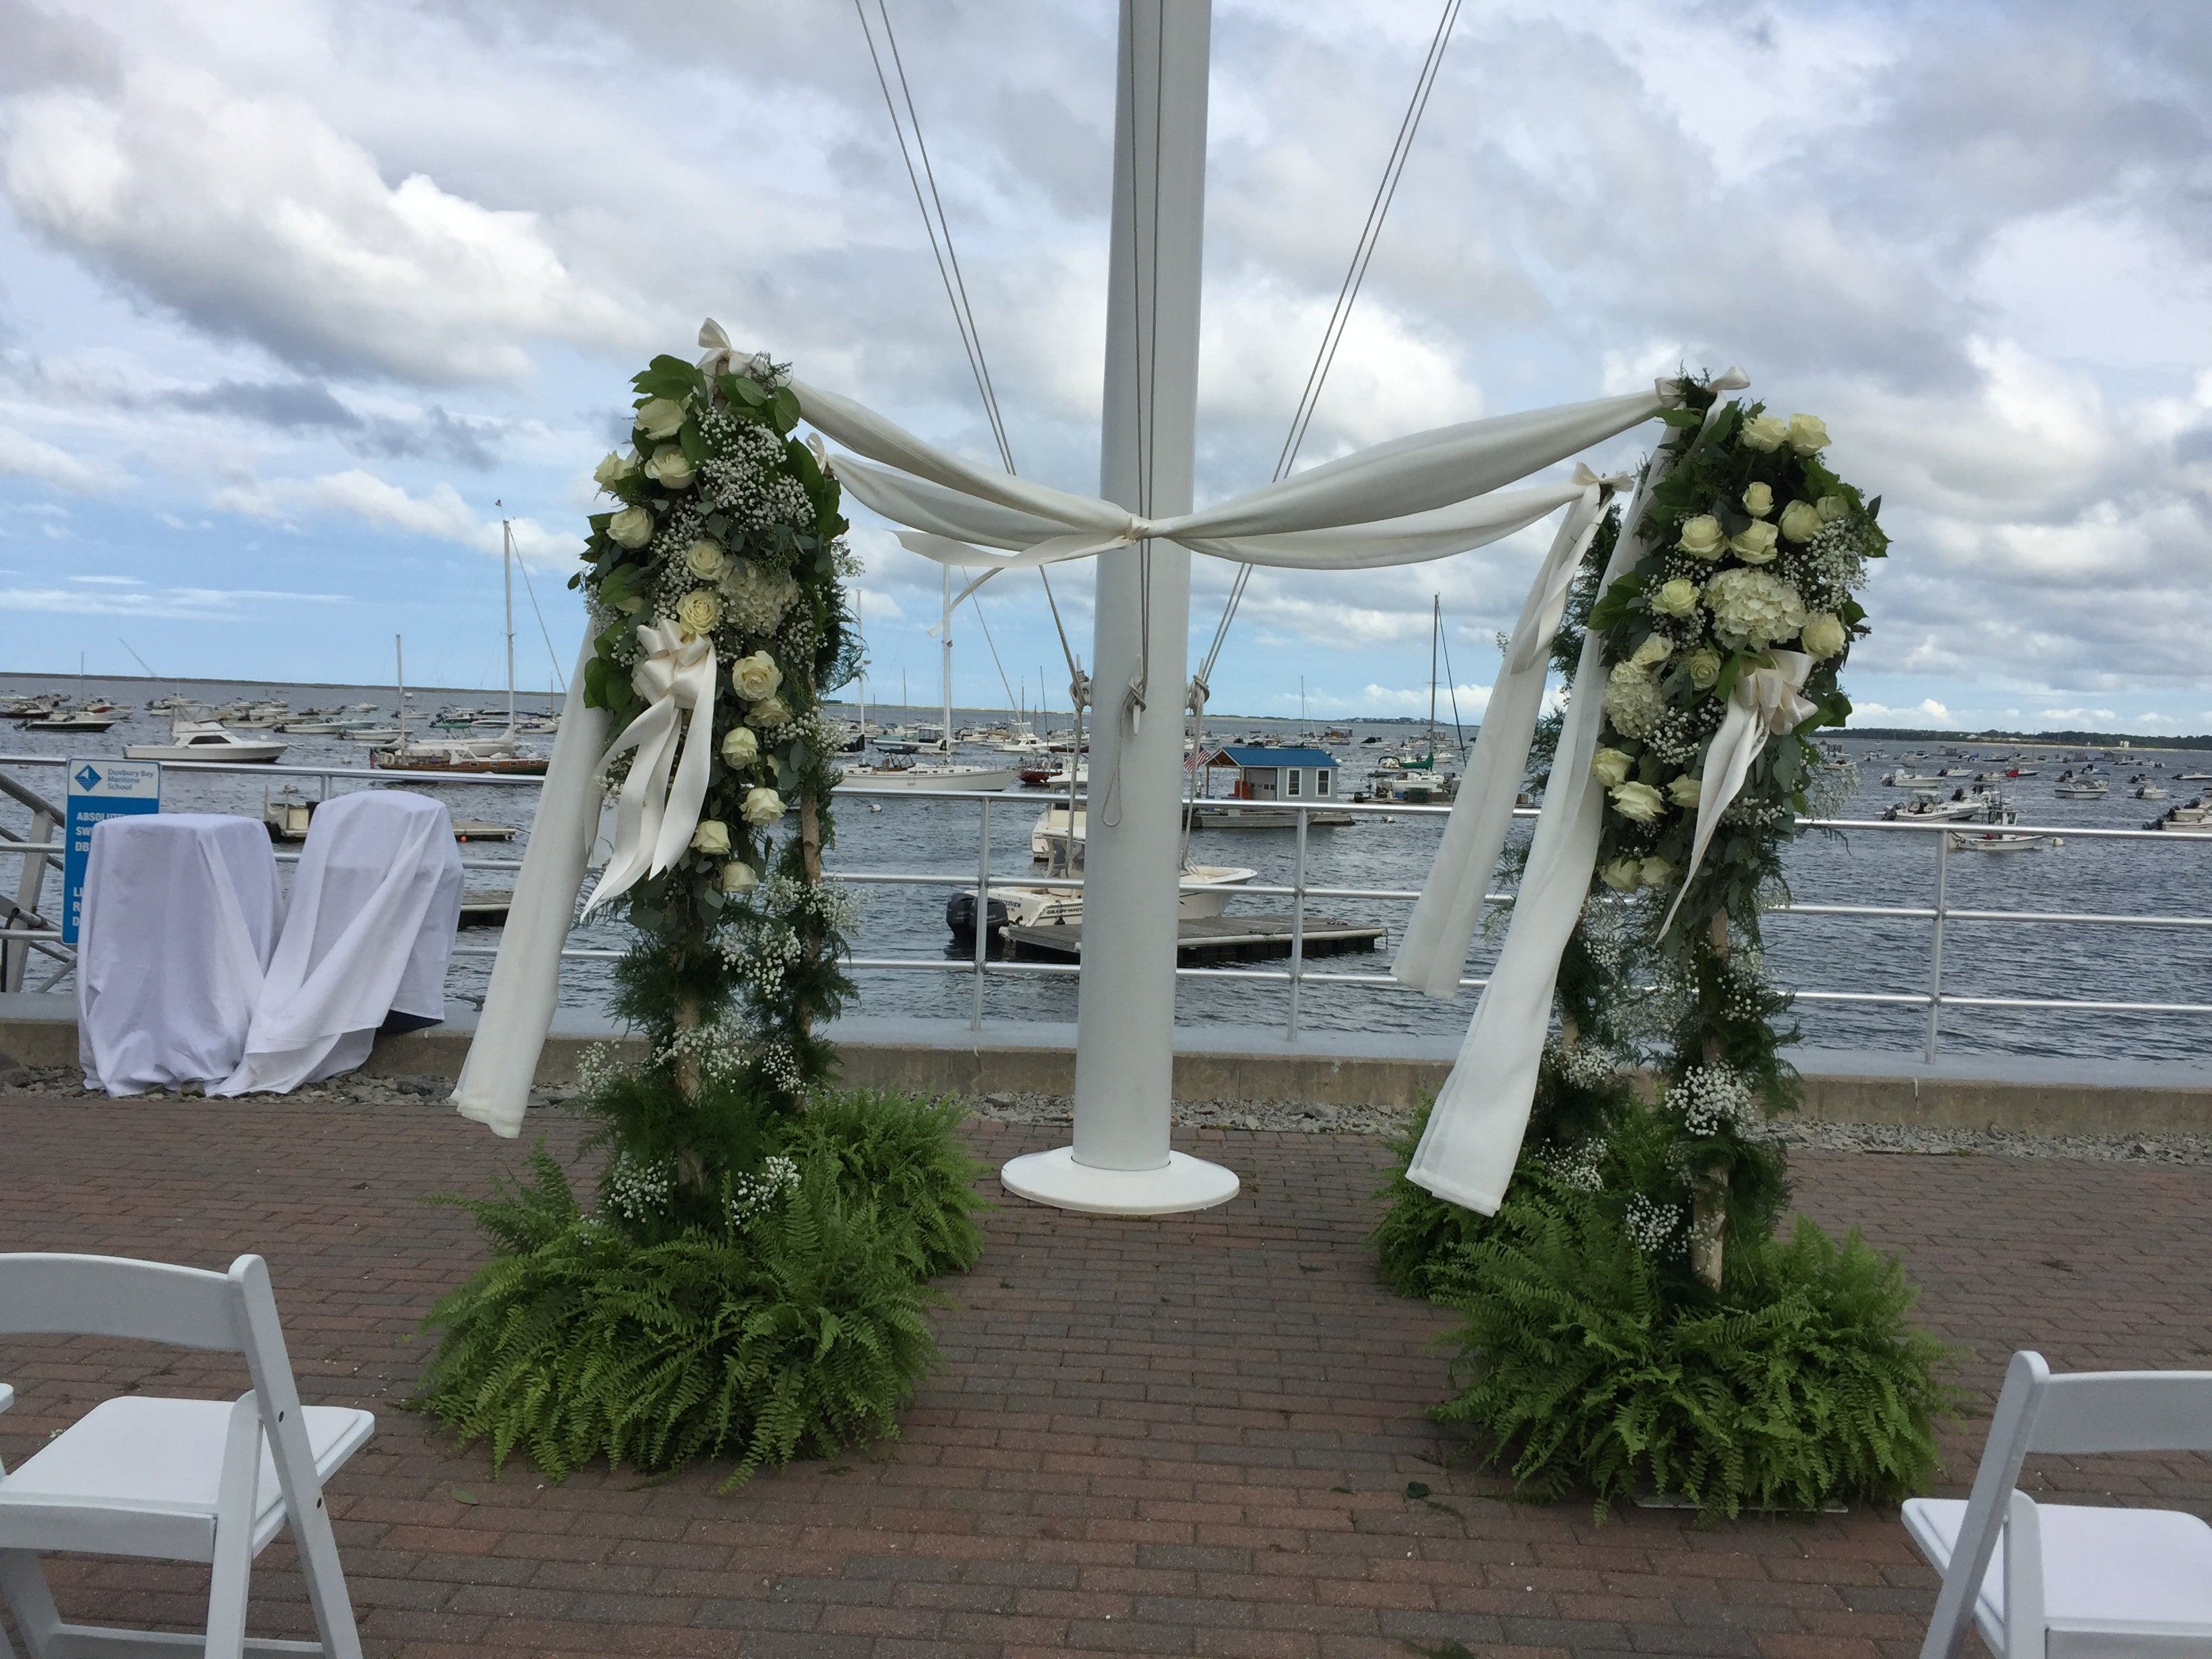 Floral Chuppah for Wedding over an Ocean View